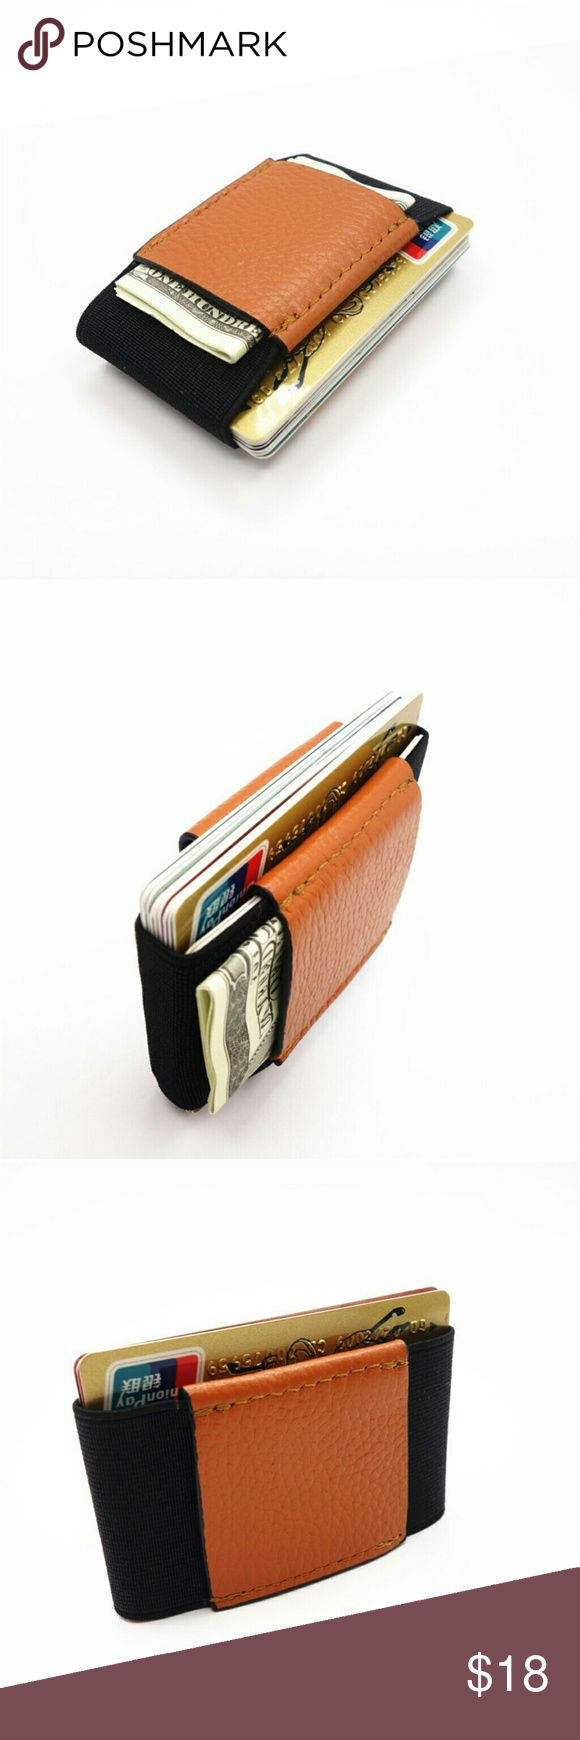 Genuine Leather Minimalist Slim Wallet Bullet Point:  1.Genuine Leather  2.Ultra Thin  3.Fashion Design    Measurement: 9.5cm x 5.5cm x 1.5cm  Flexible material can hold up to 10 cards, easy to save cash  Super minimalist wallet  Unisex for both men & women Bags Wallets